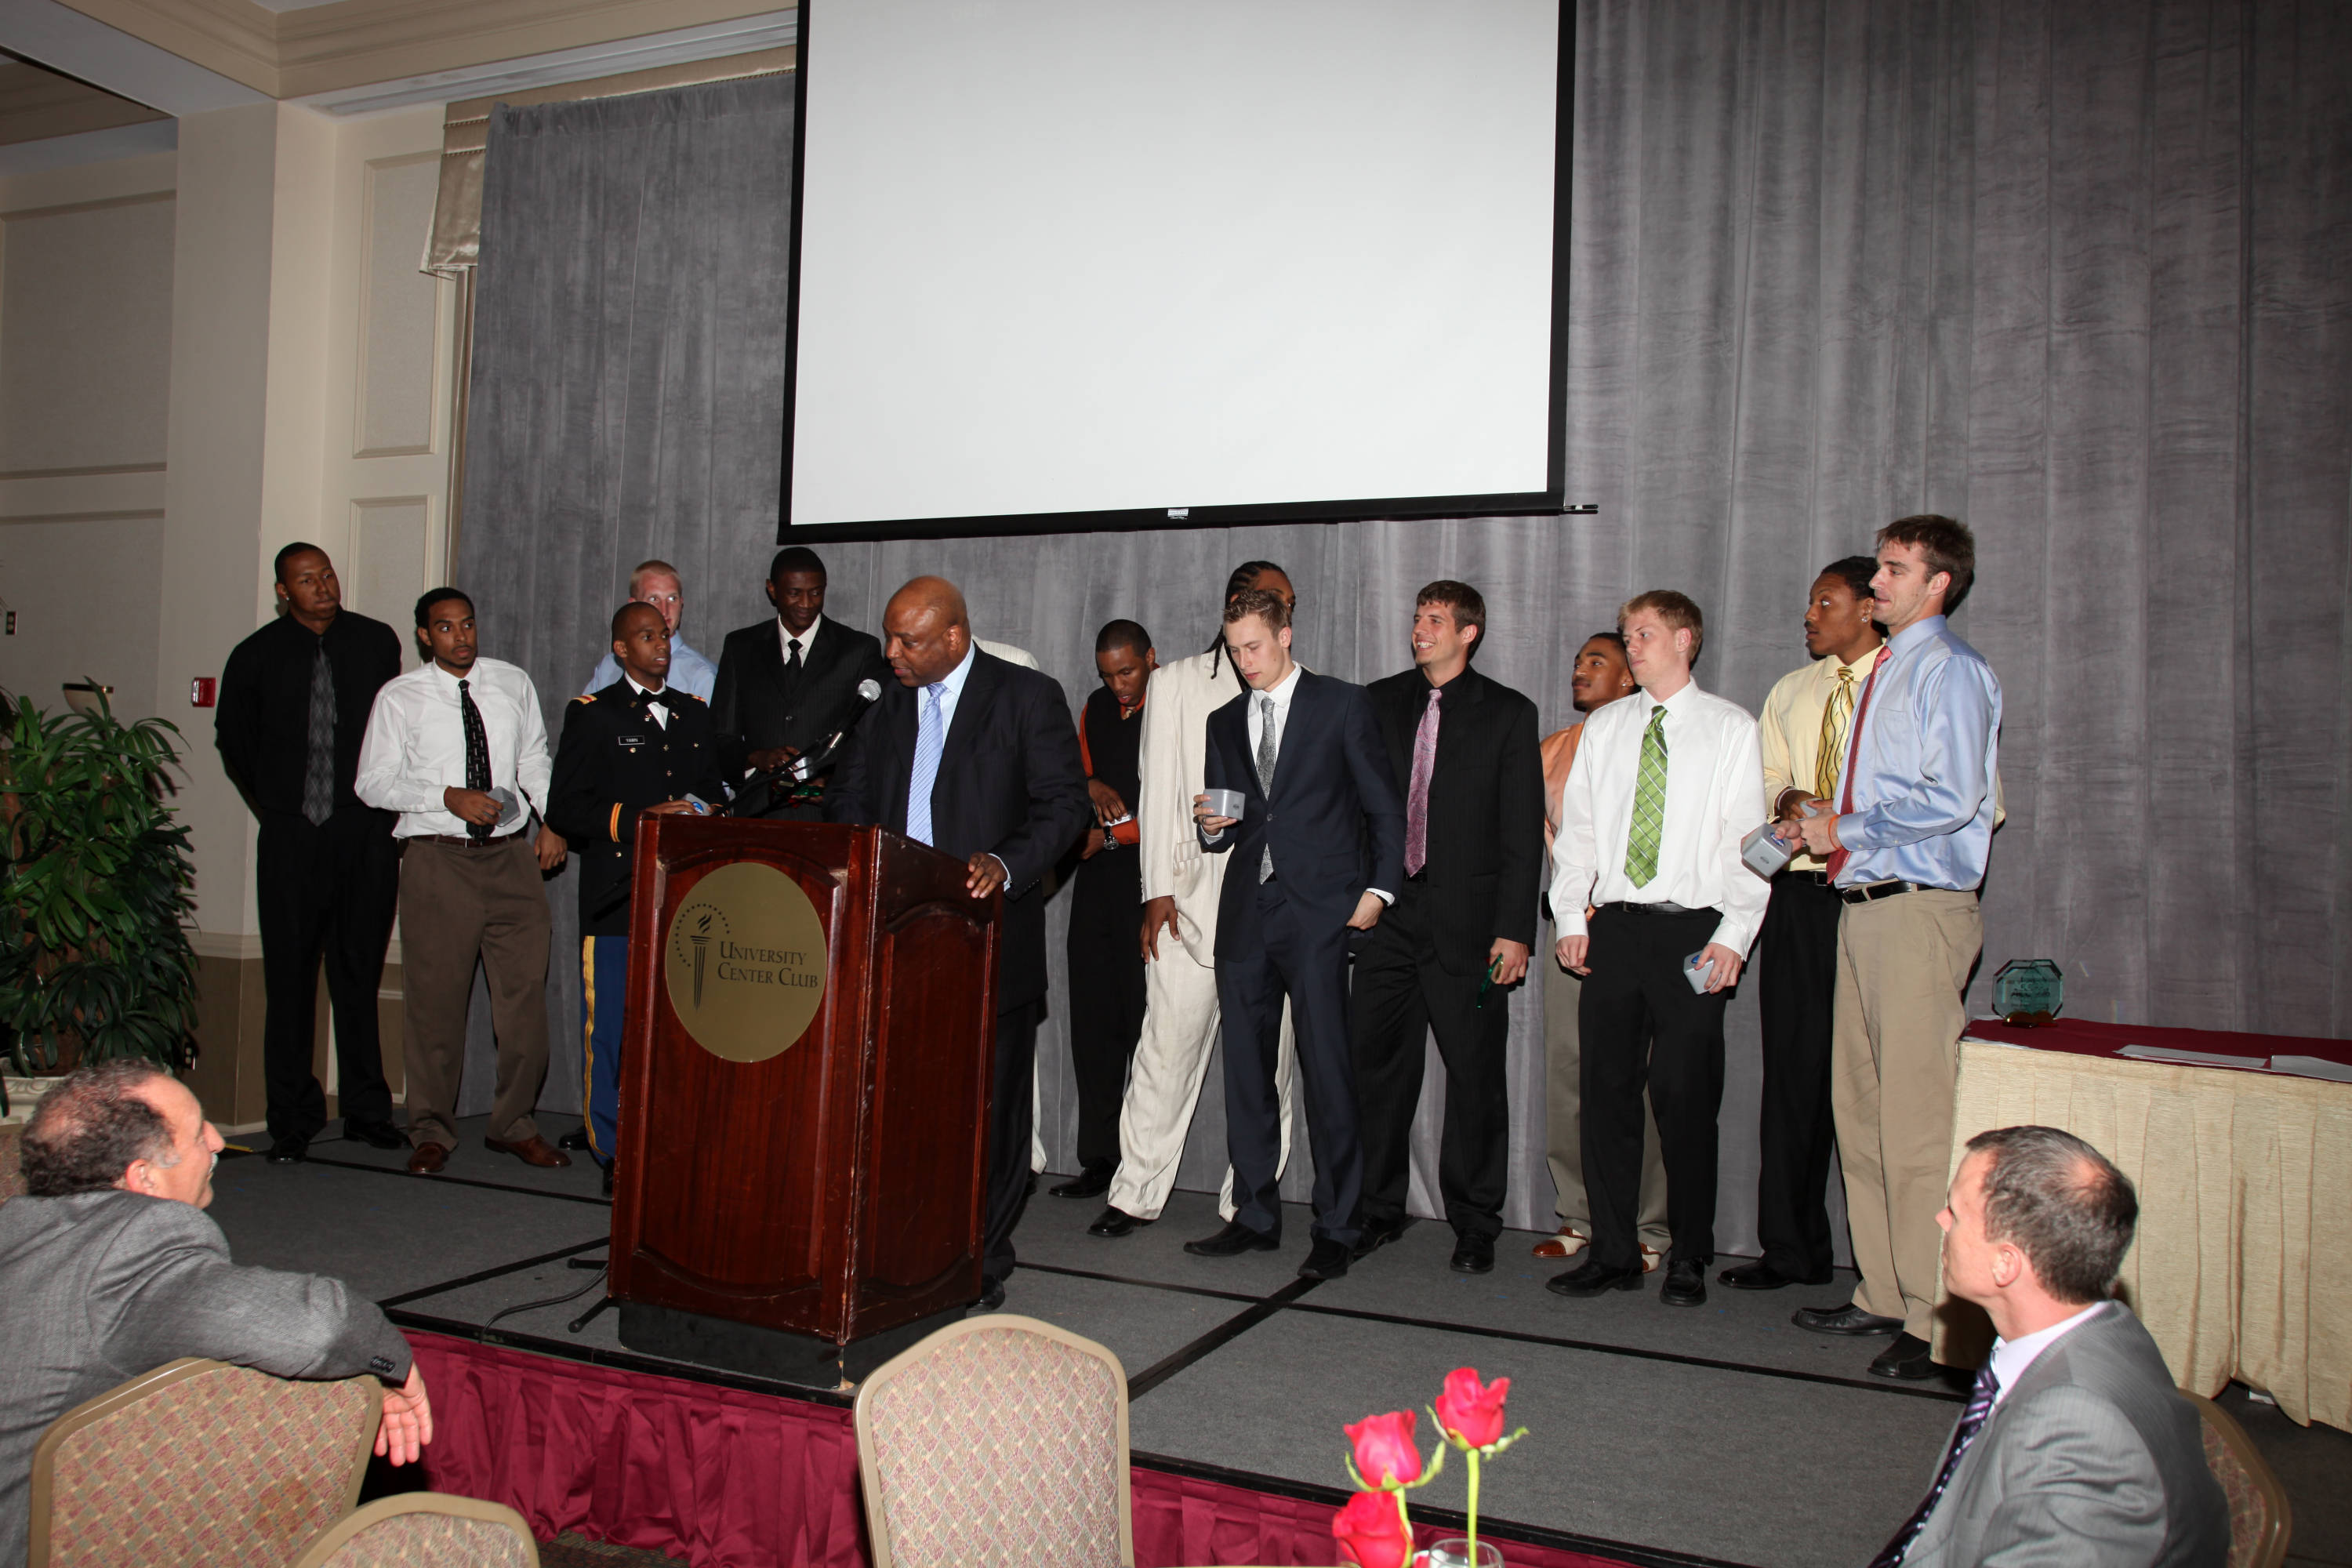 2010 Men's Basketball Banquet